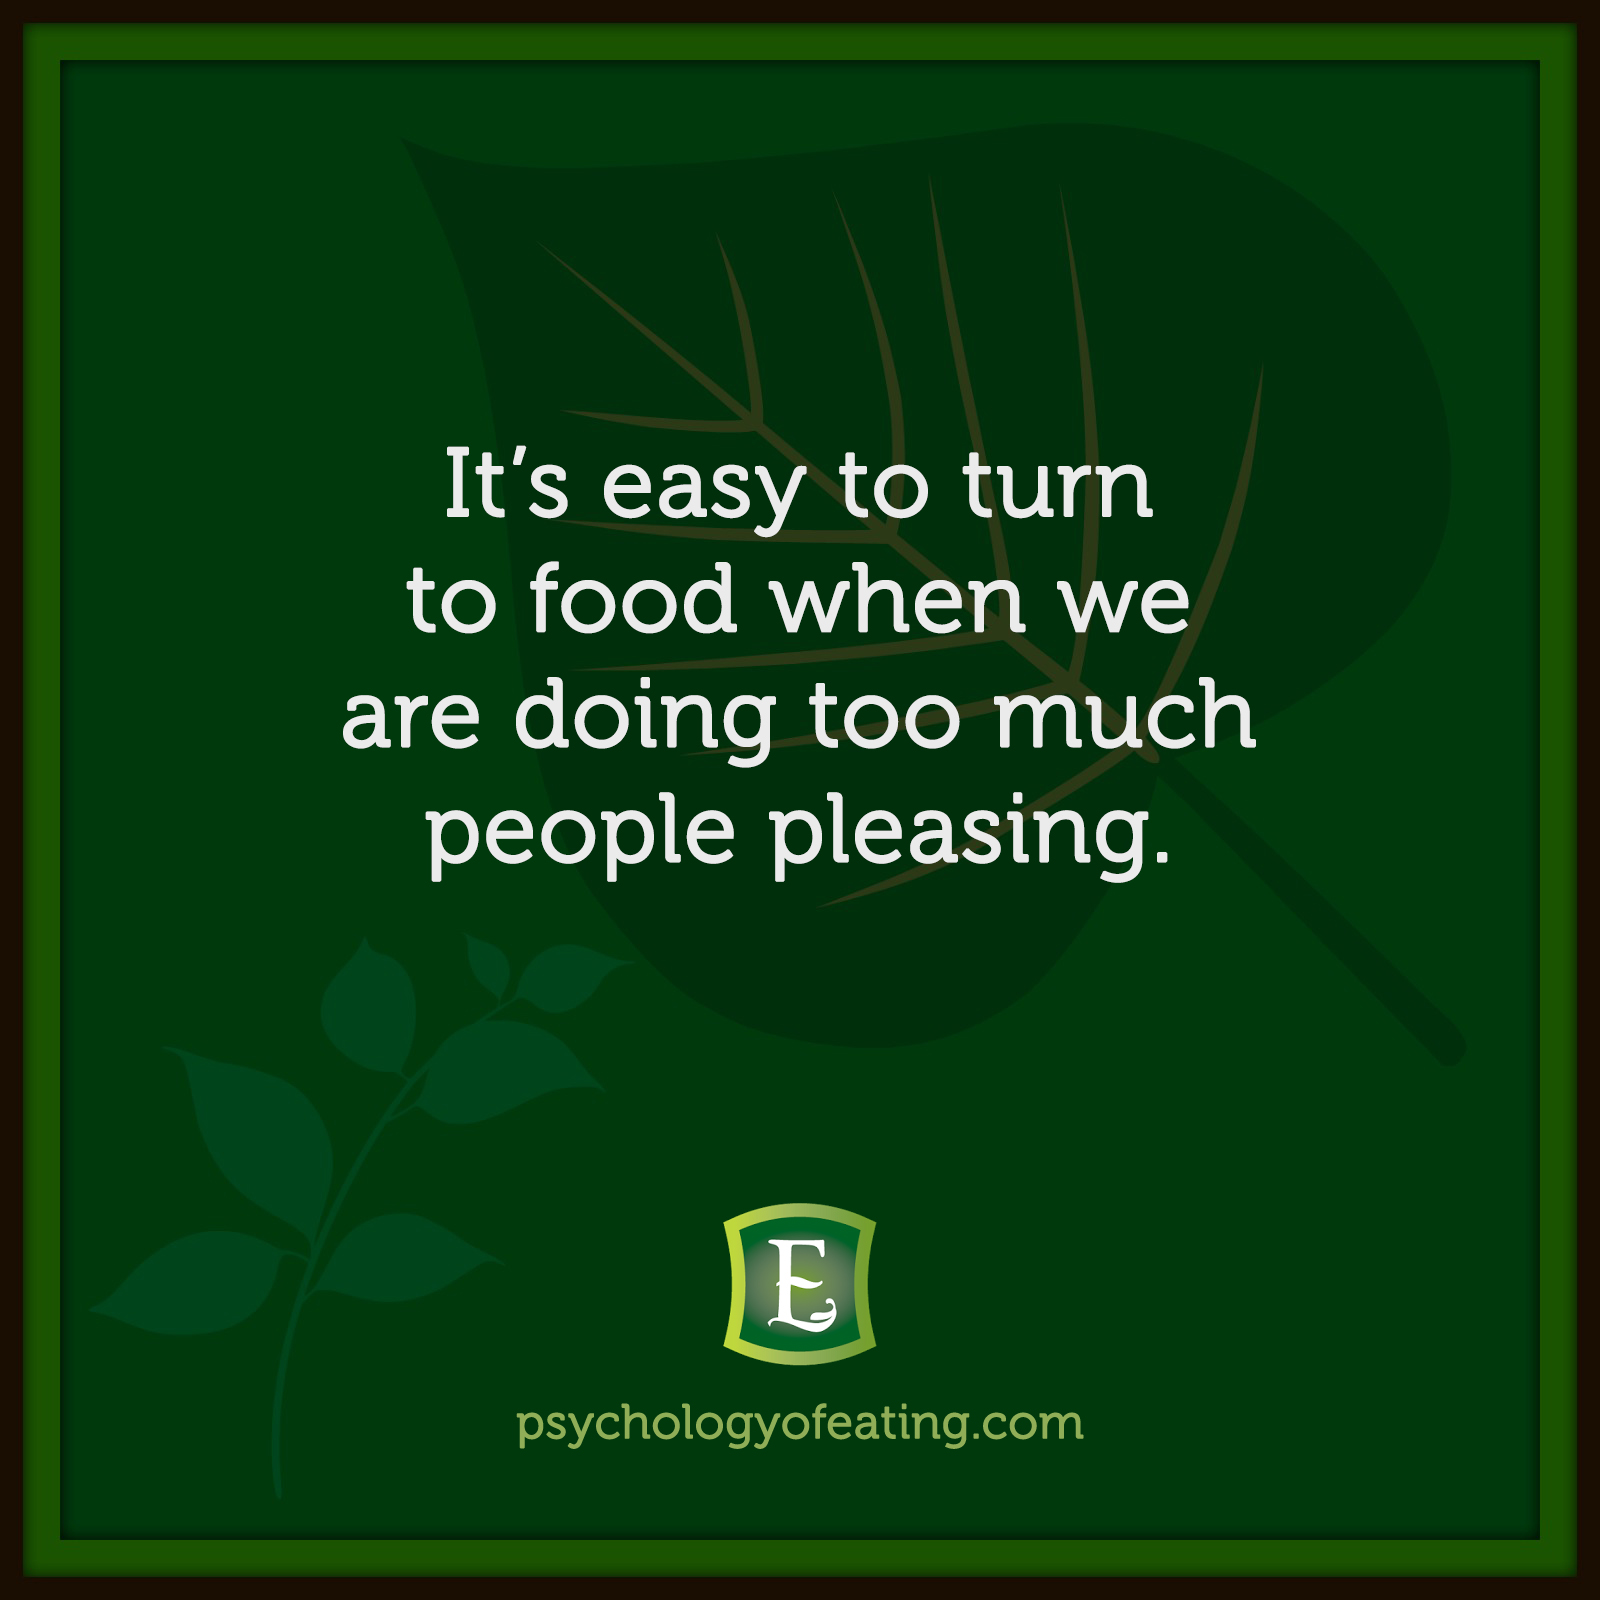 It's easy to turn to food when we are doing too much people pleasing.  #health #nutrition #eatingpsychology #IPE